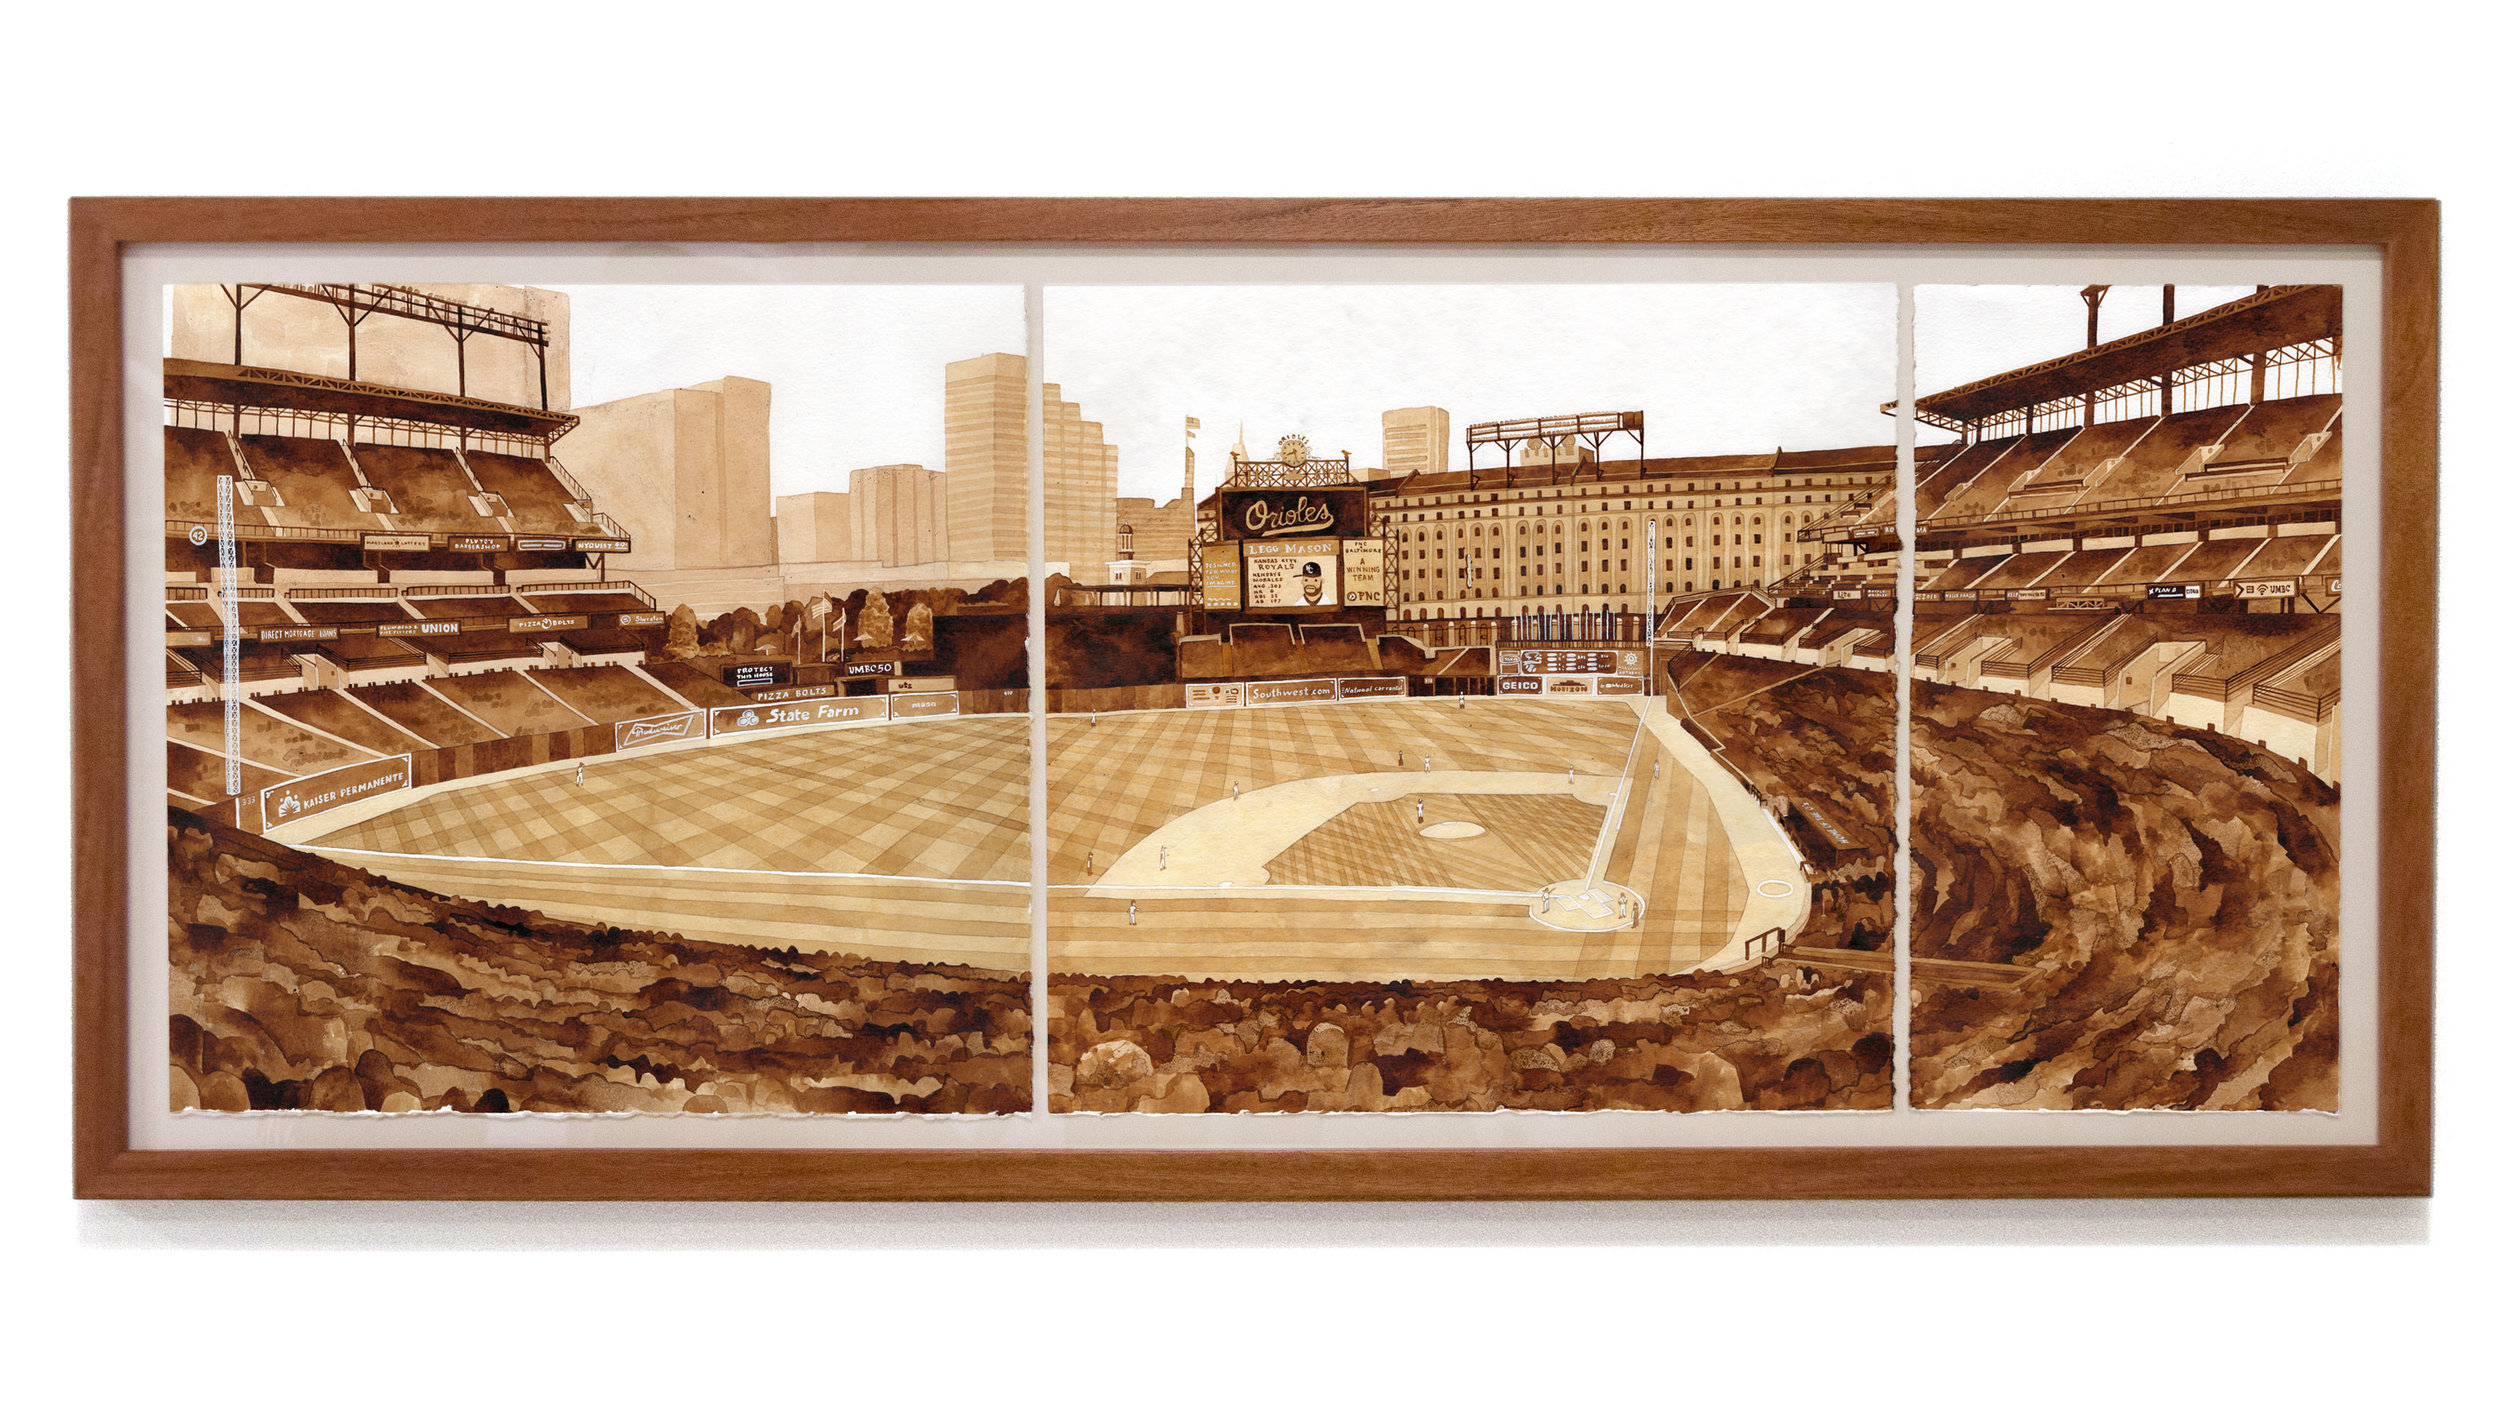 "ORIOLE PARK at CAMDEN YARDS  Kansas City Royals v Baltimore Orioles, June 8, 2016 ink, 36"" x 15"" Kansas City 0 - Orioles 4 Section 45, Row 7, Seat 3"